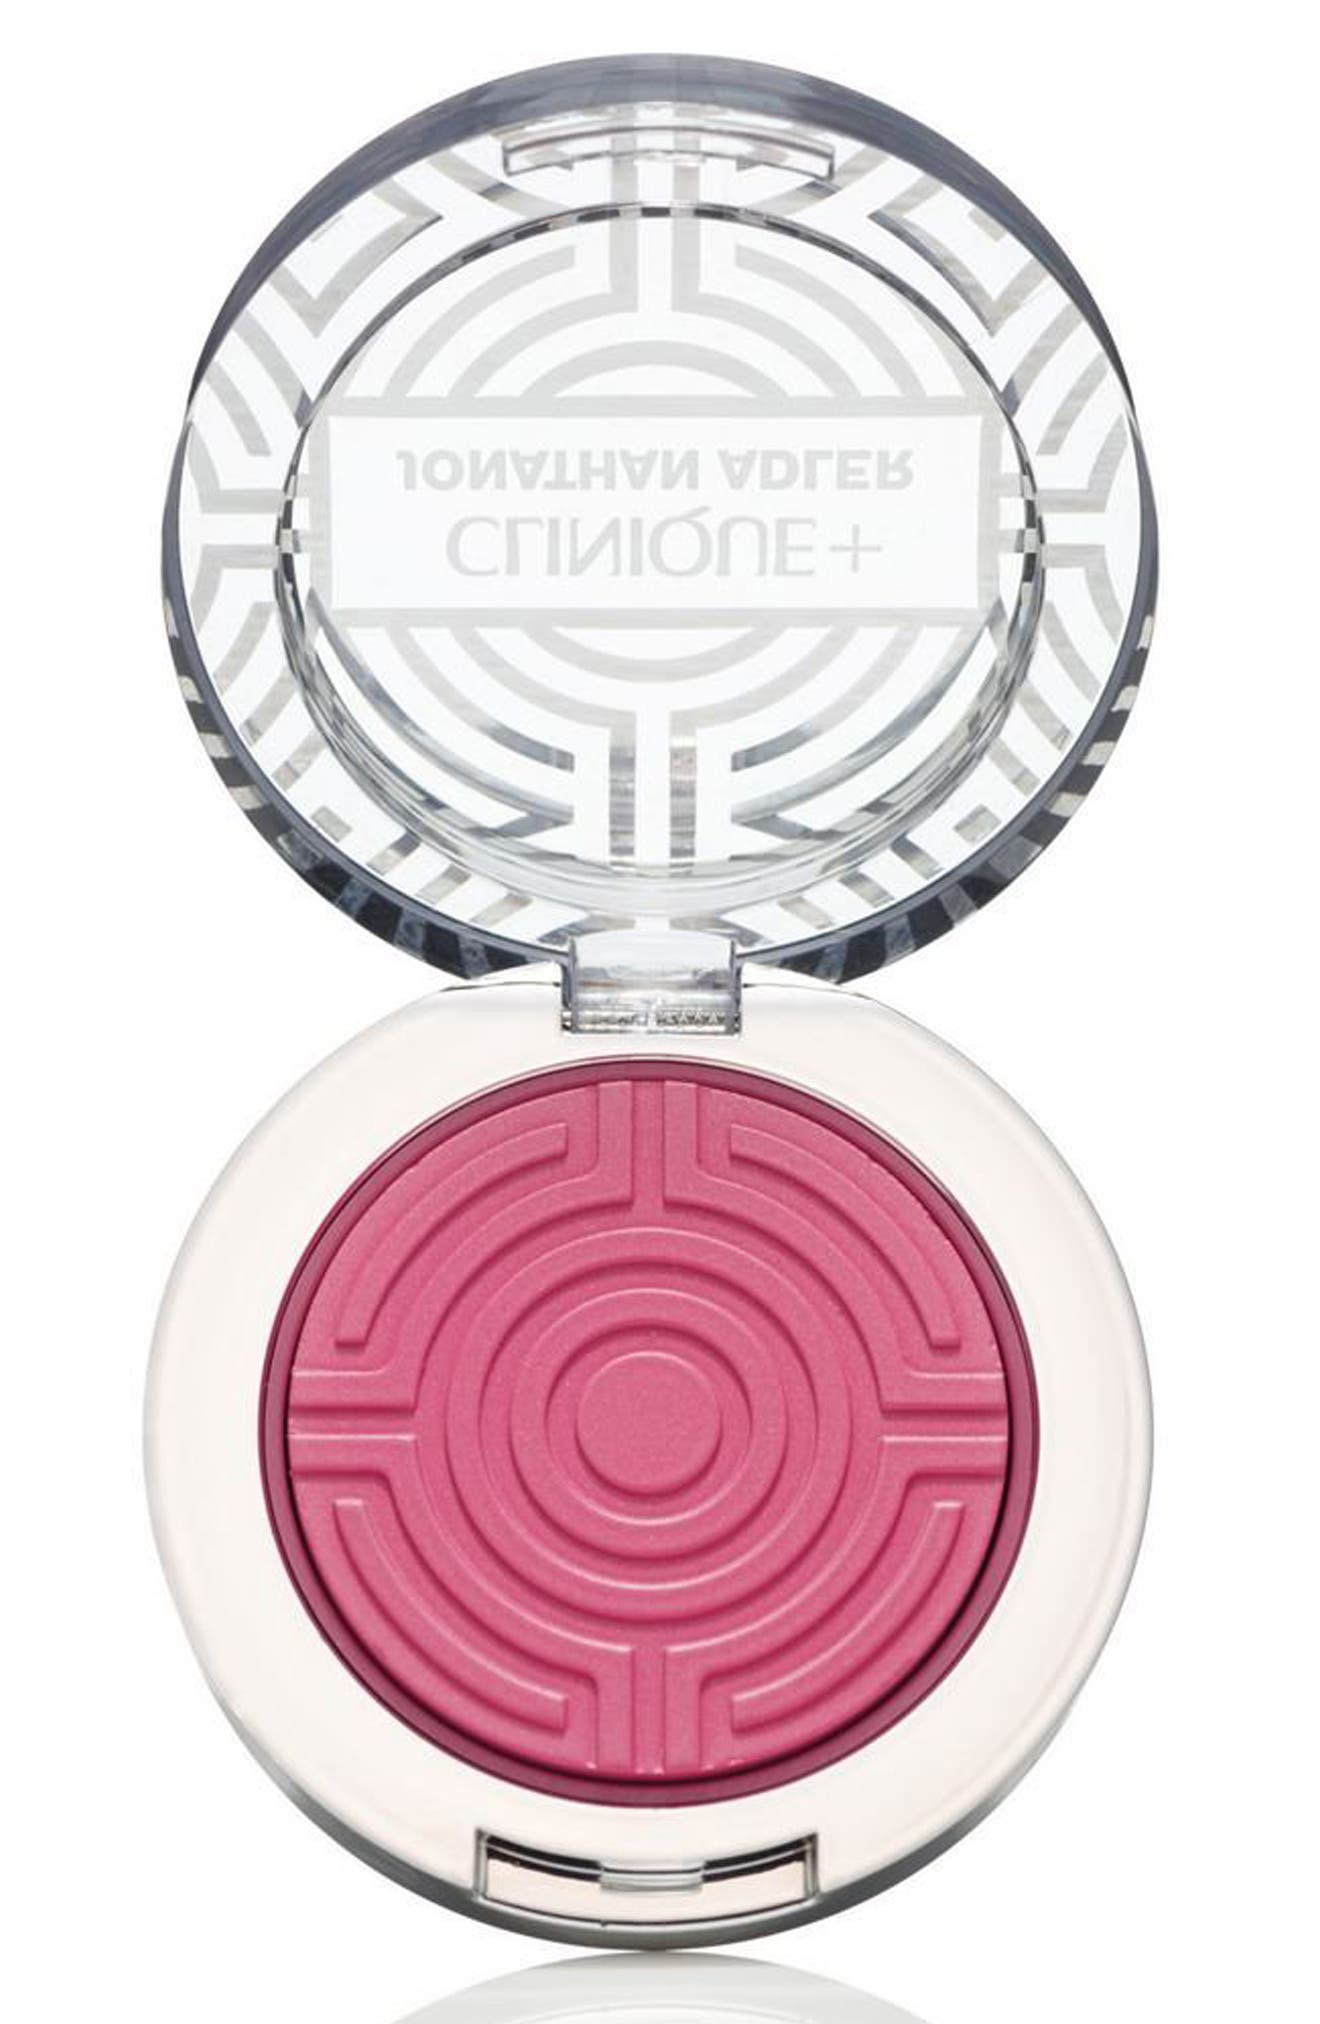 Clinique Jonathan Adler Cheek Pop (Limited Edition)